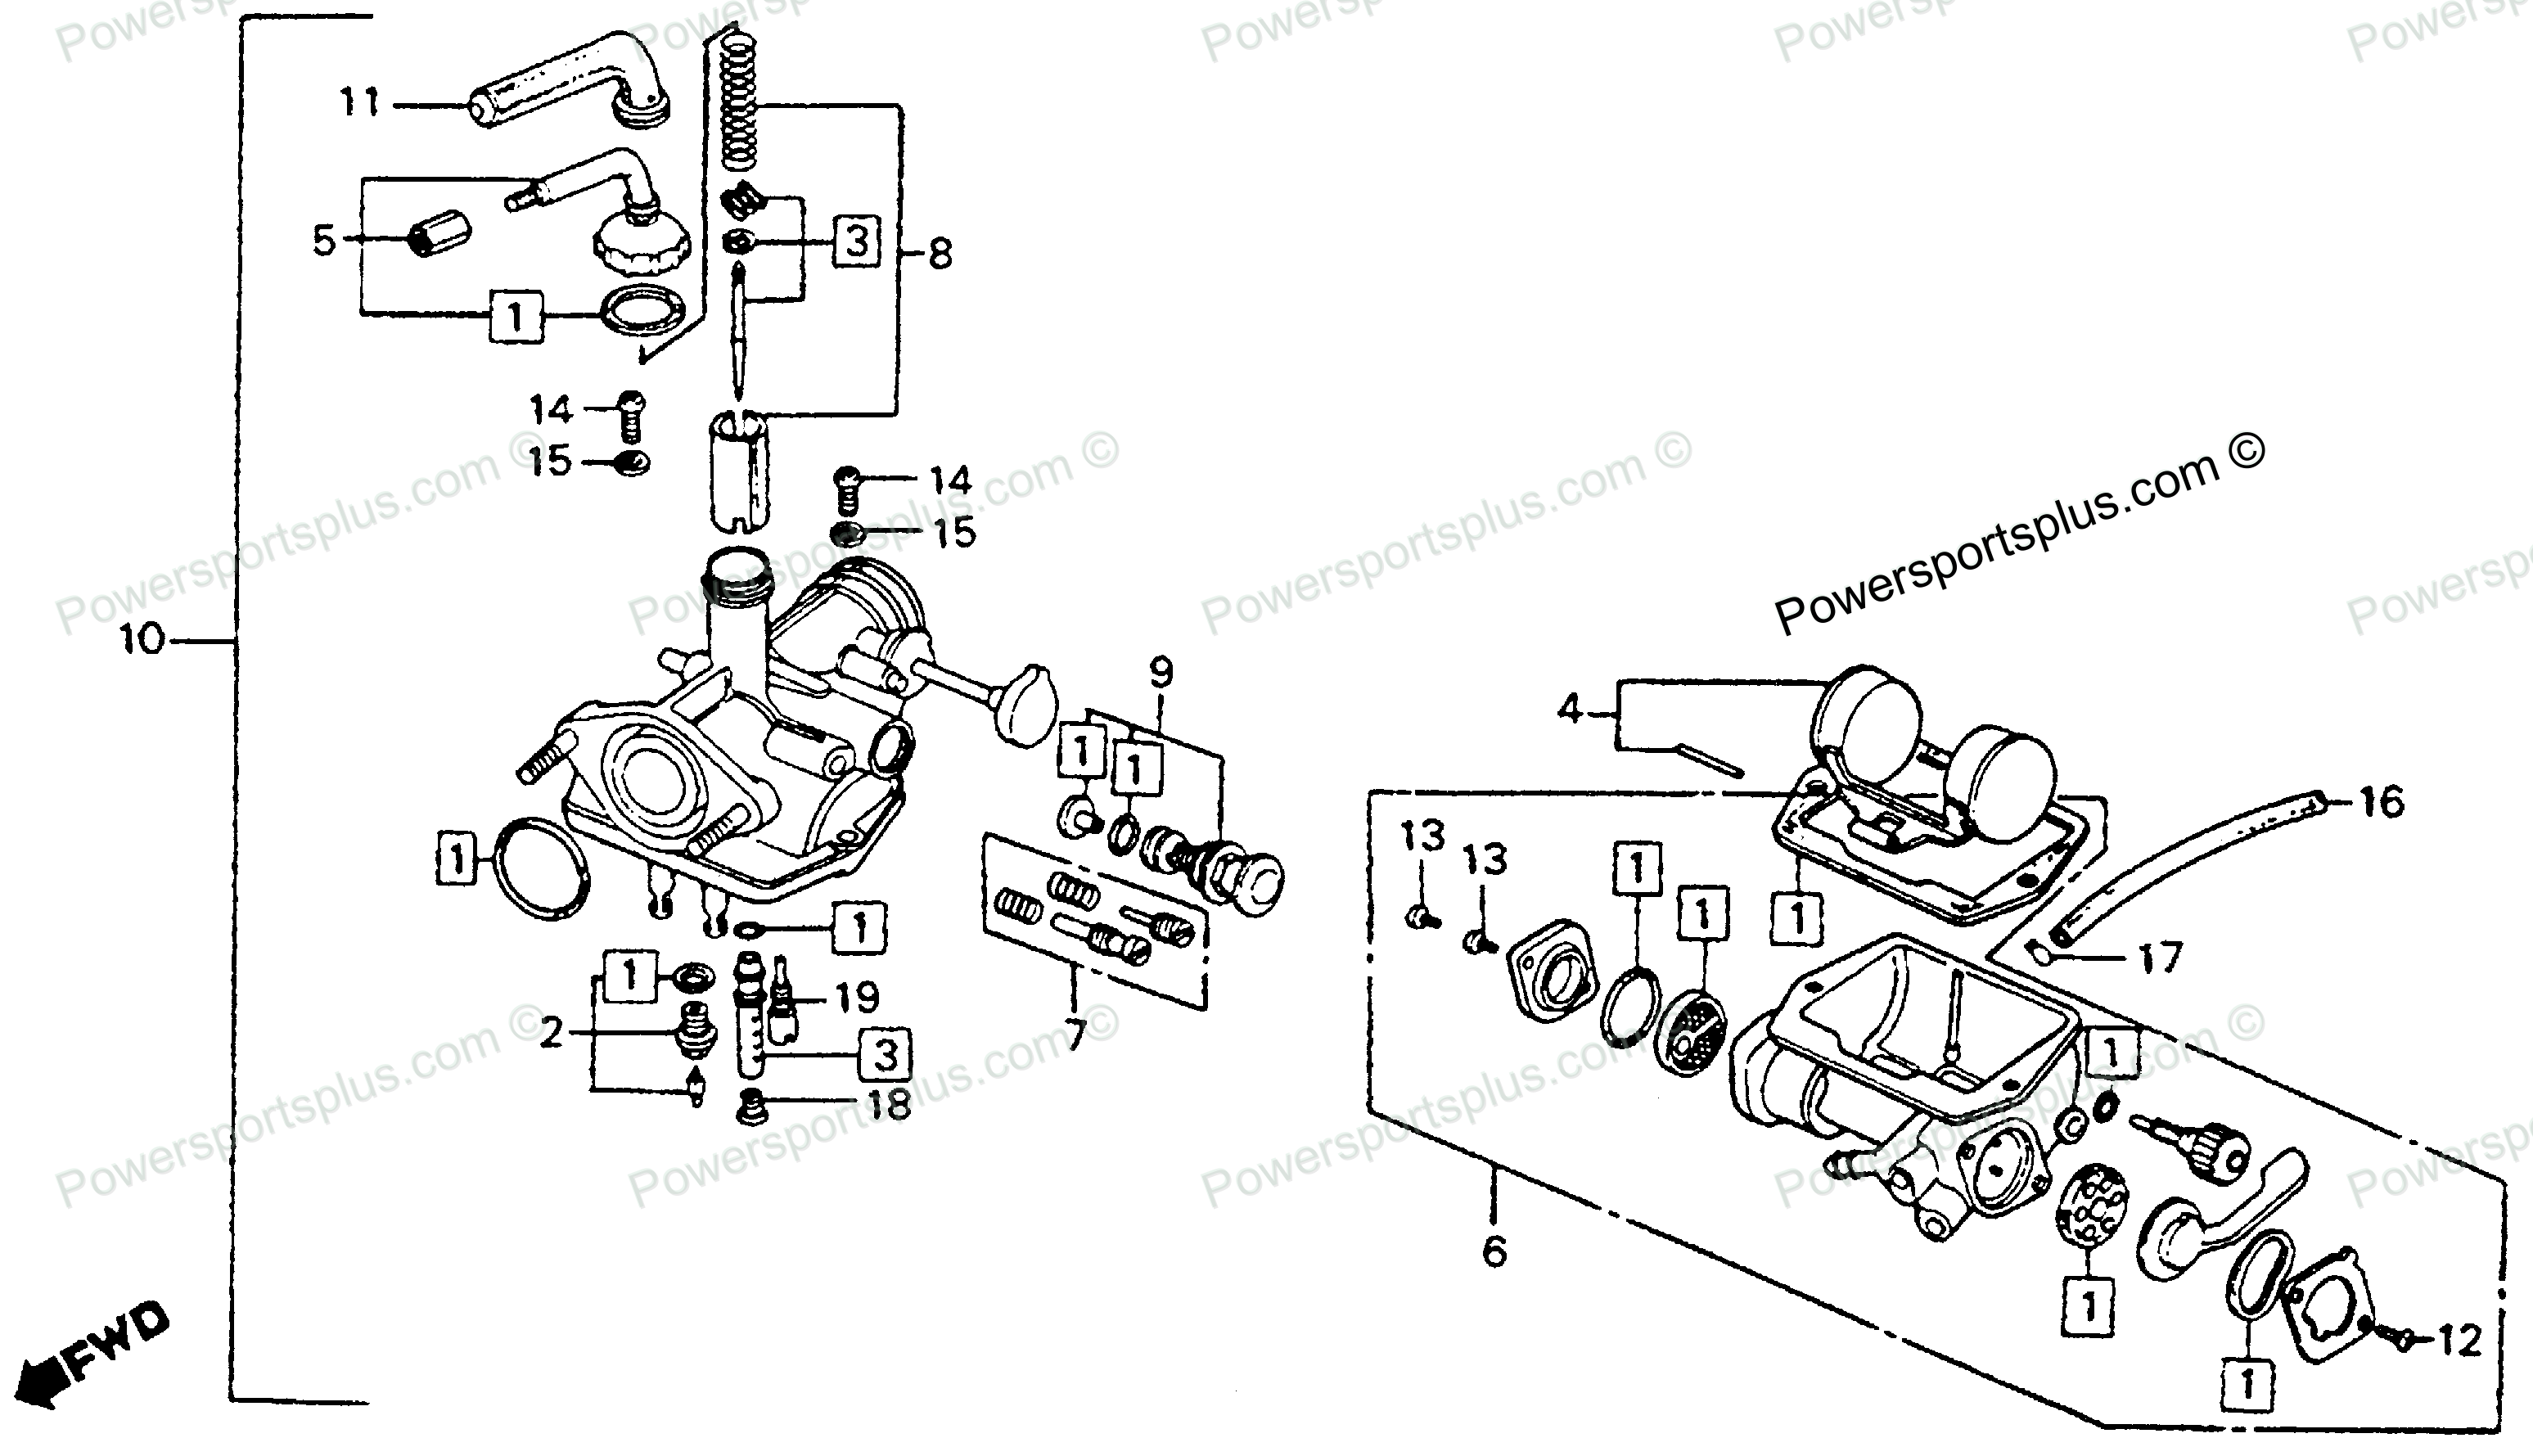 0efb18283ae24d7a2627632be070cf5c diagram of honda motorcycle parts 1976 ct90 a carburetor k6 77 honda motorcycles parts diagram at mifinder.co